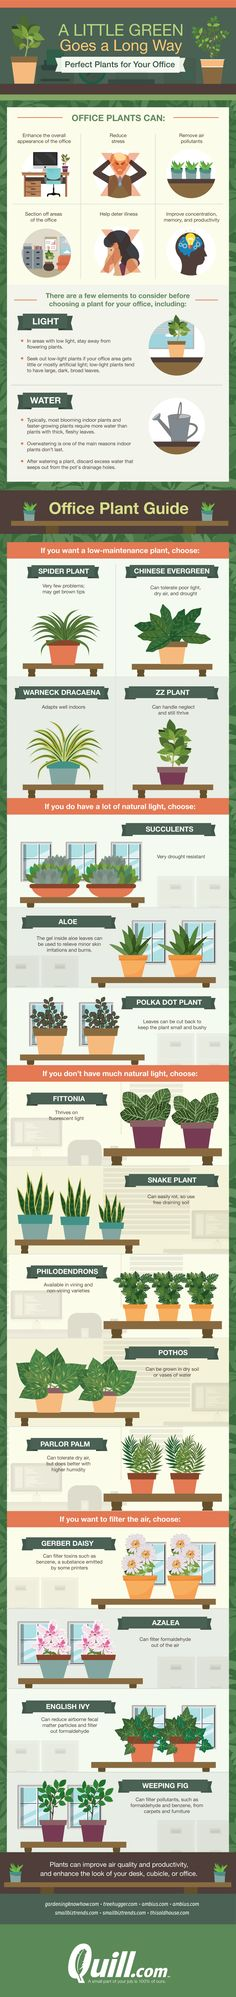 A Little Green Goes a Long Way: Plants Perfect For Your Office #Infographic #Workplace